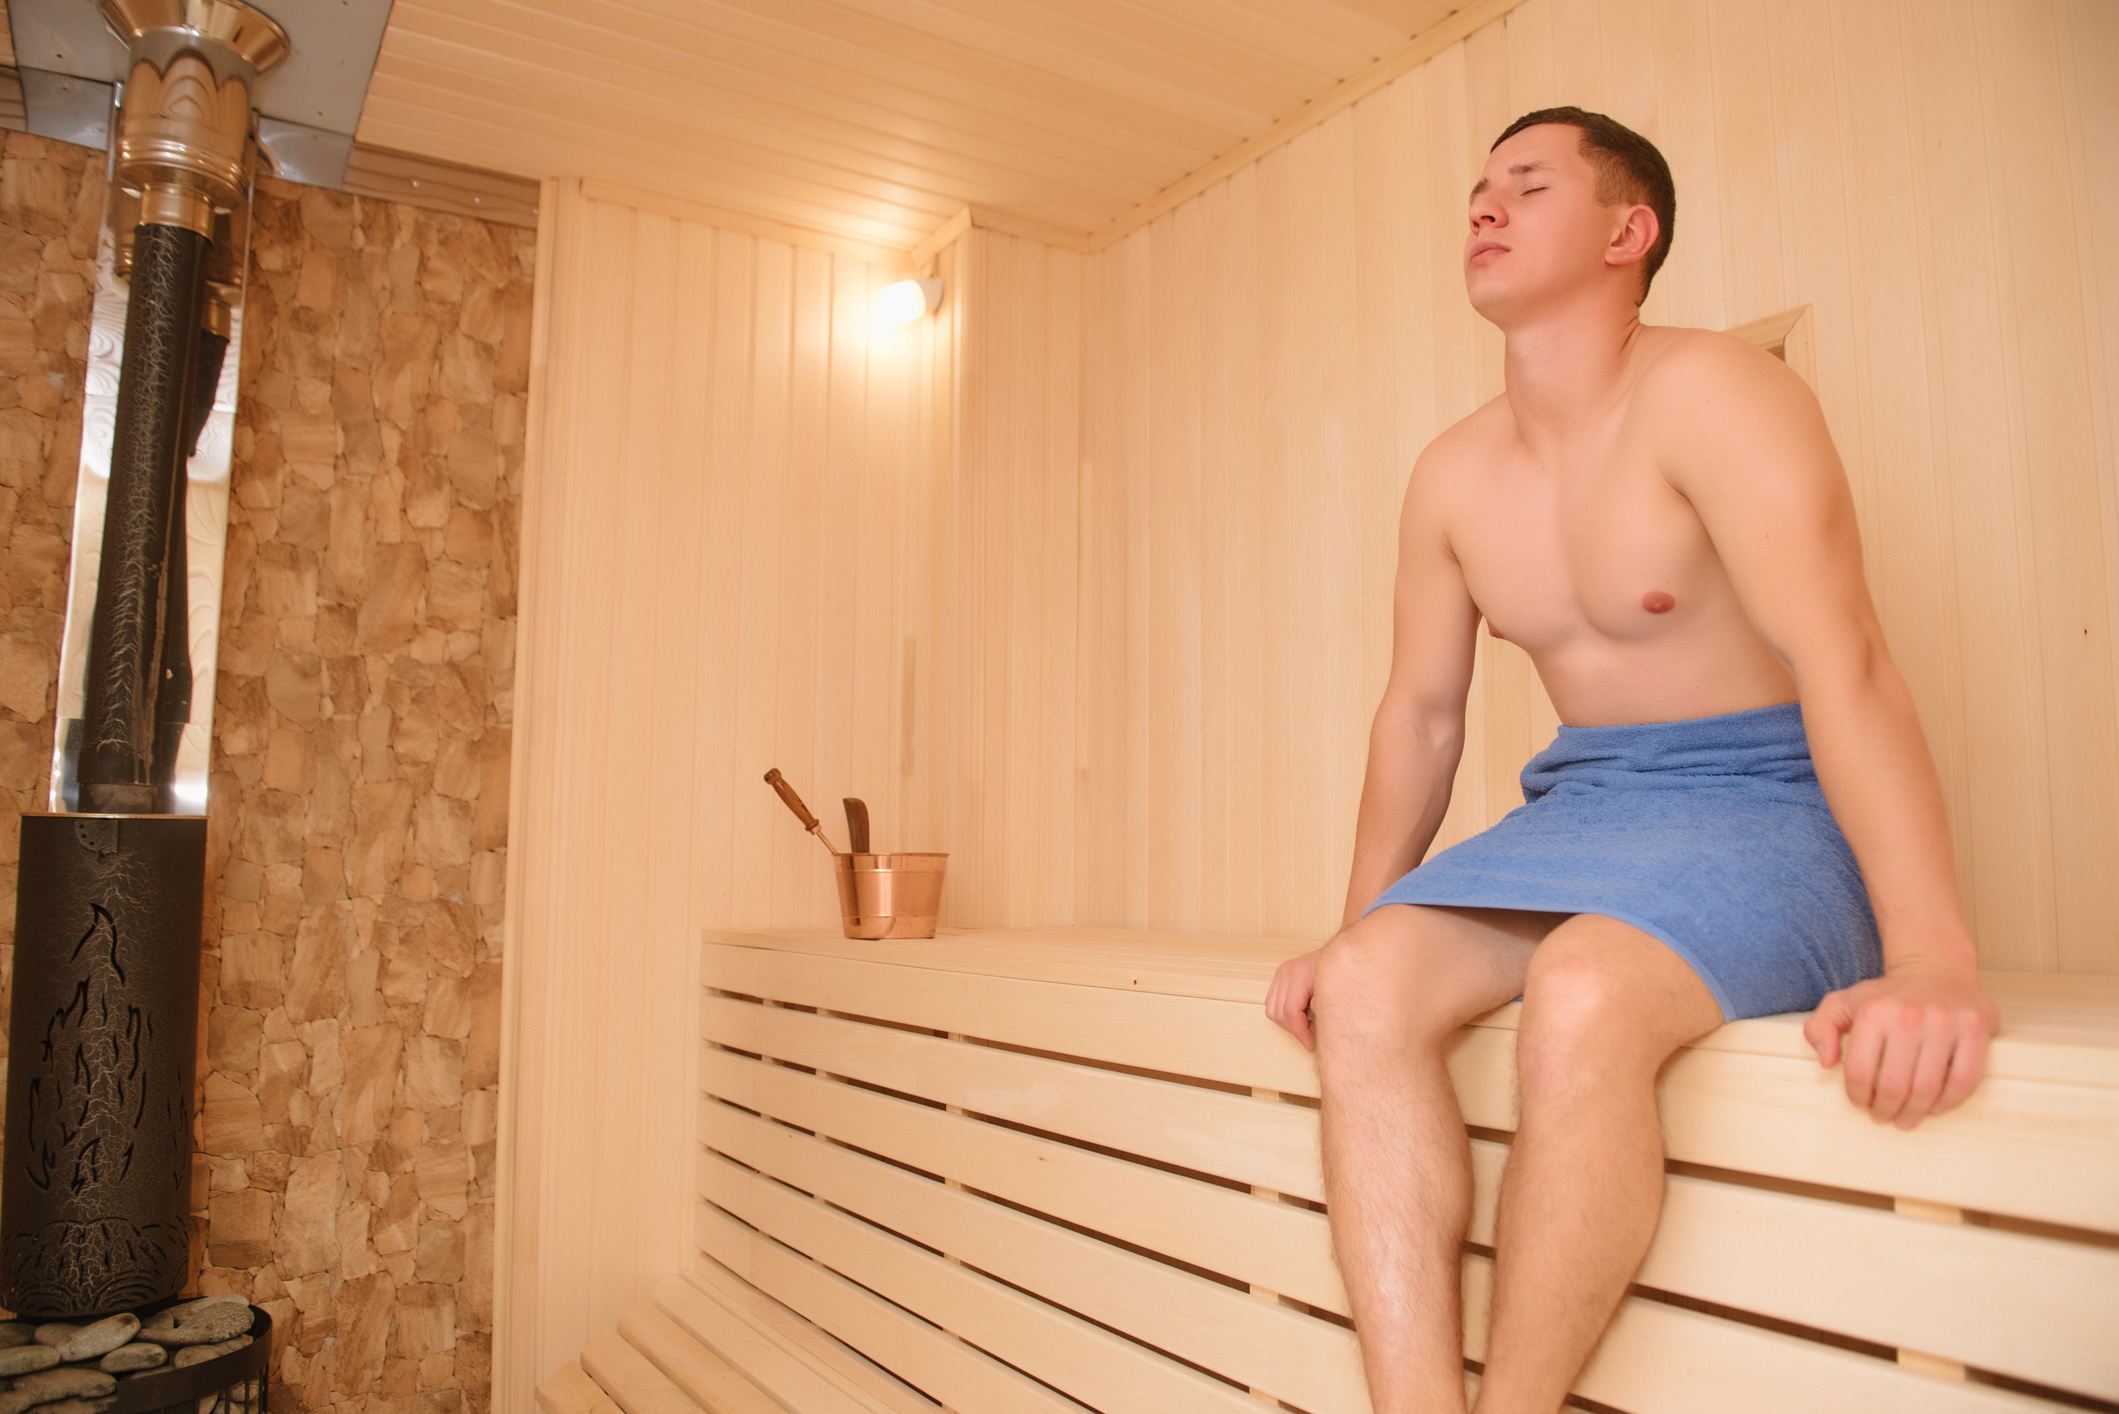 clinical health benefits of saunas | Heads Up